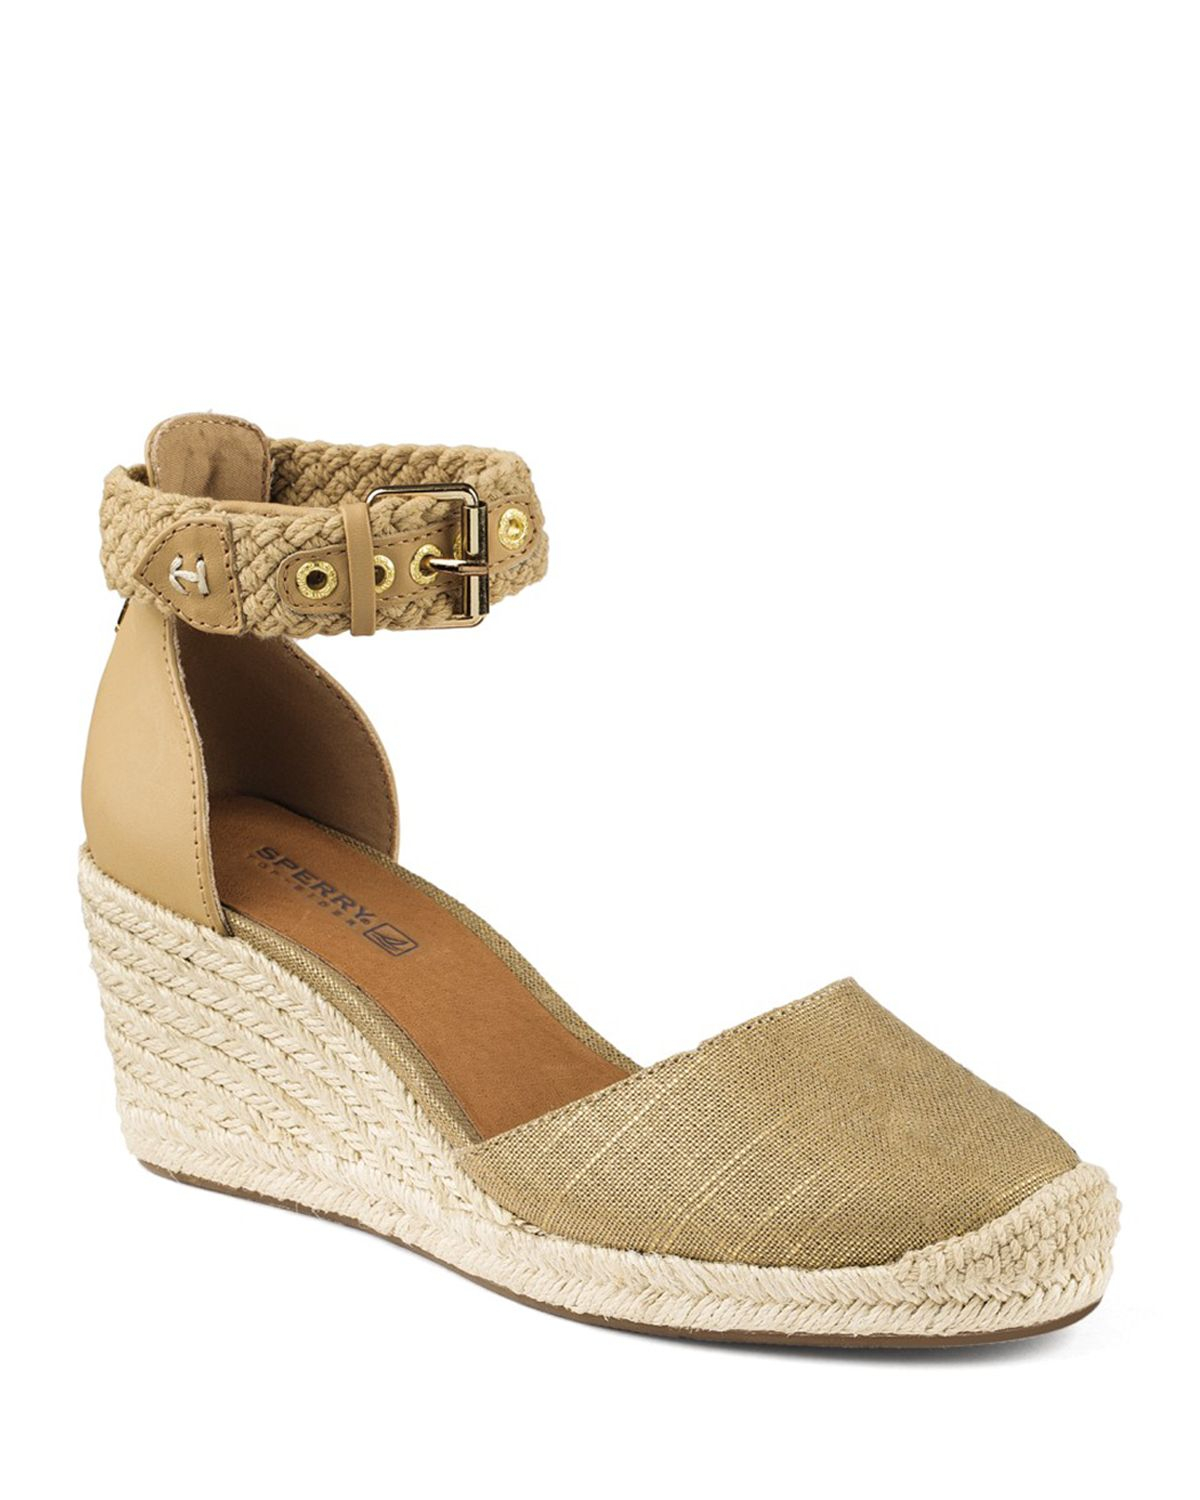 fc043405e5172 Sperry Top-Sider Espadrille Wedge Sandals - Valencia Closed Toe ...